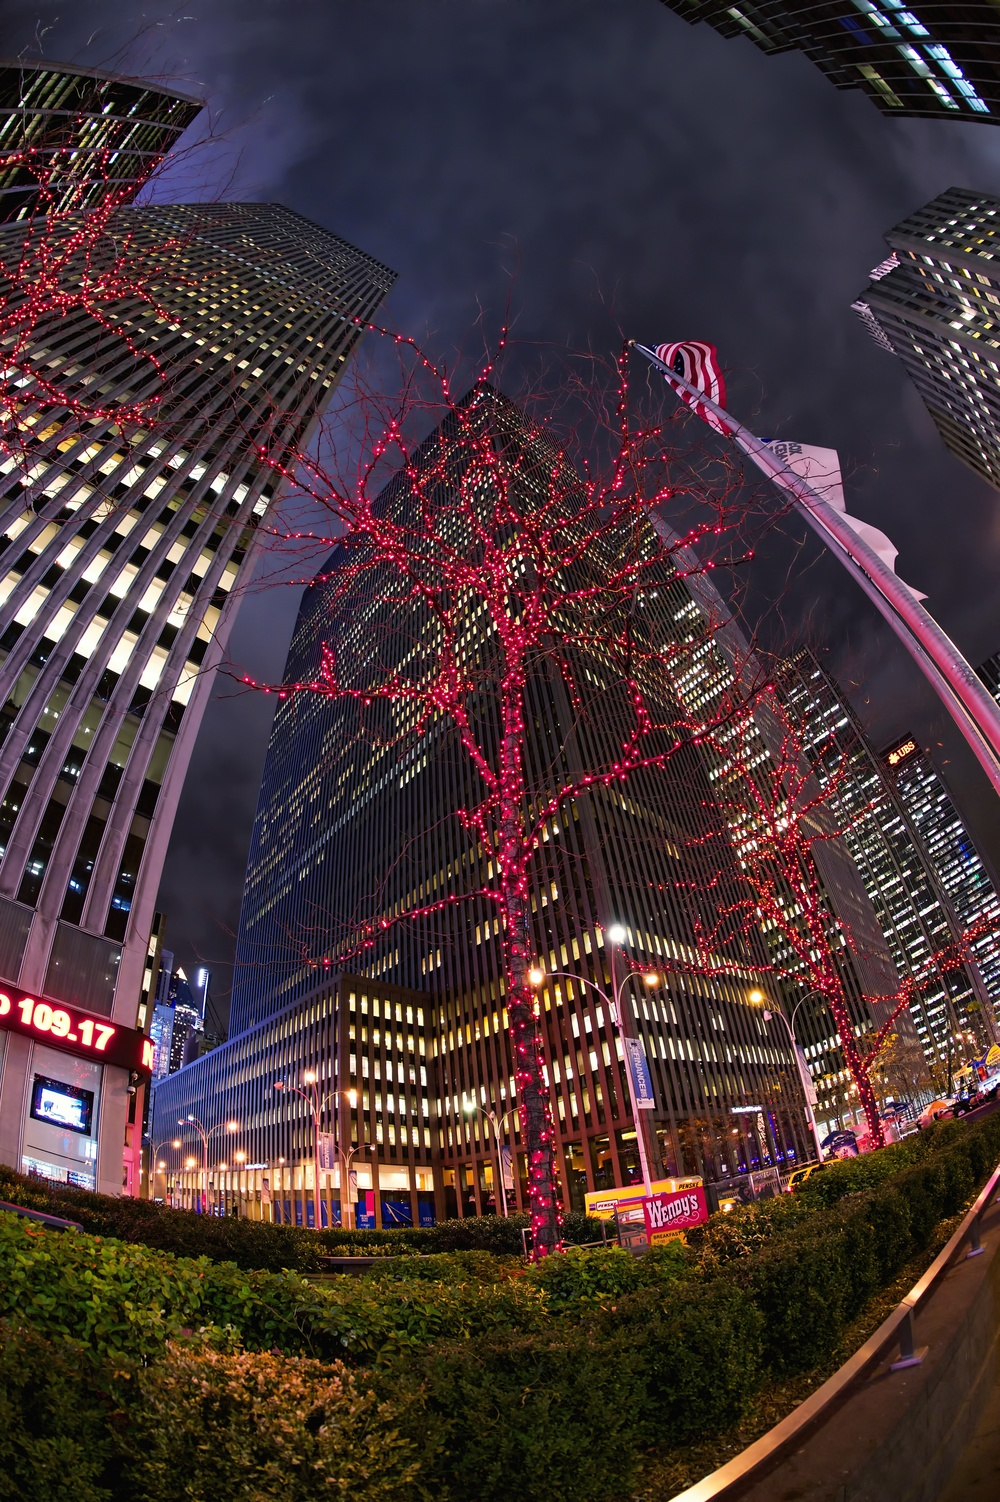 Avenue of the Americas, Manhattan with Christmas decorations on the trees.